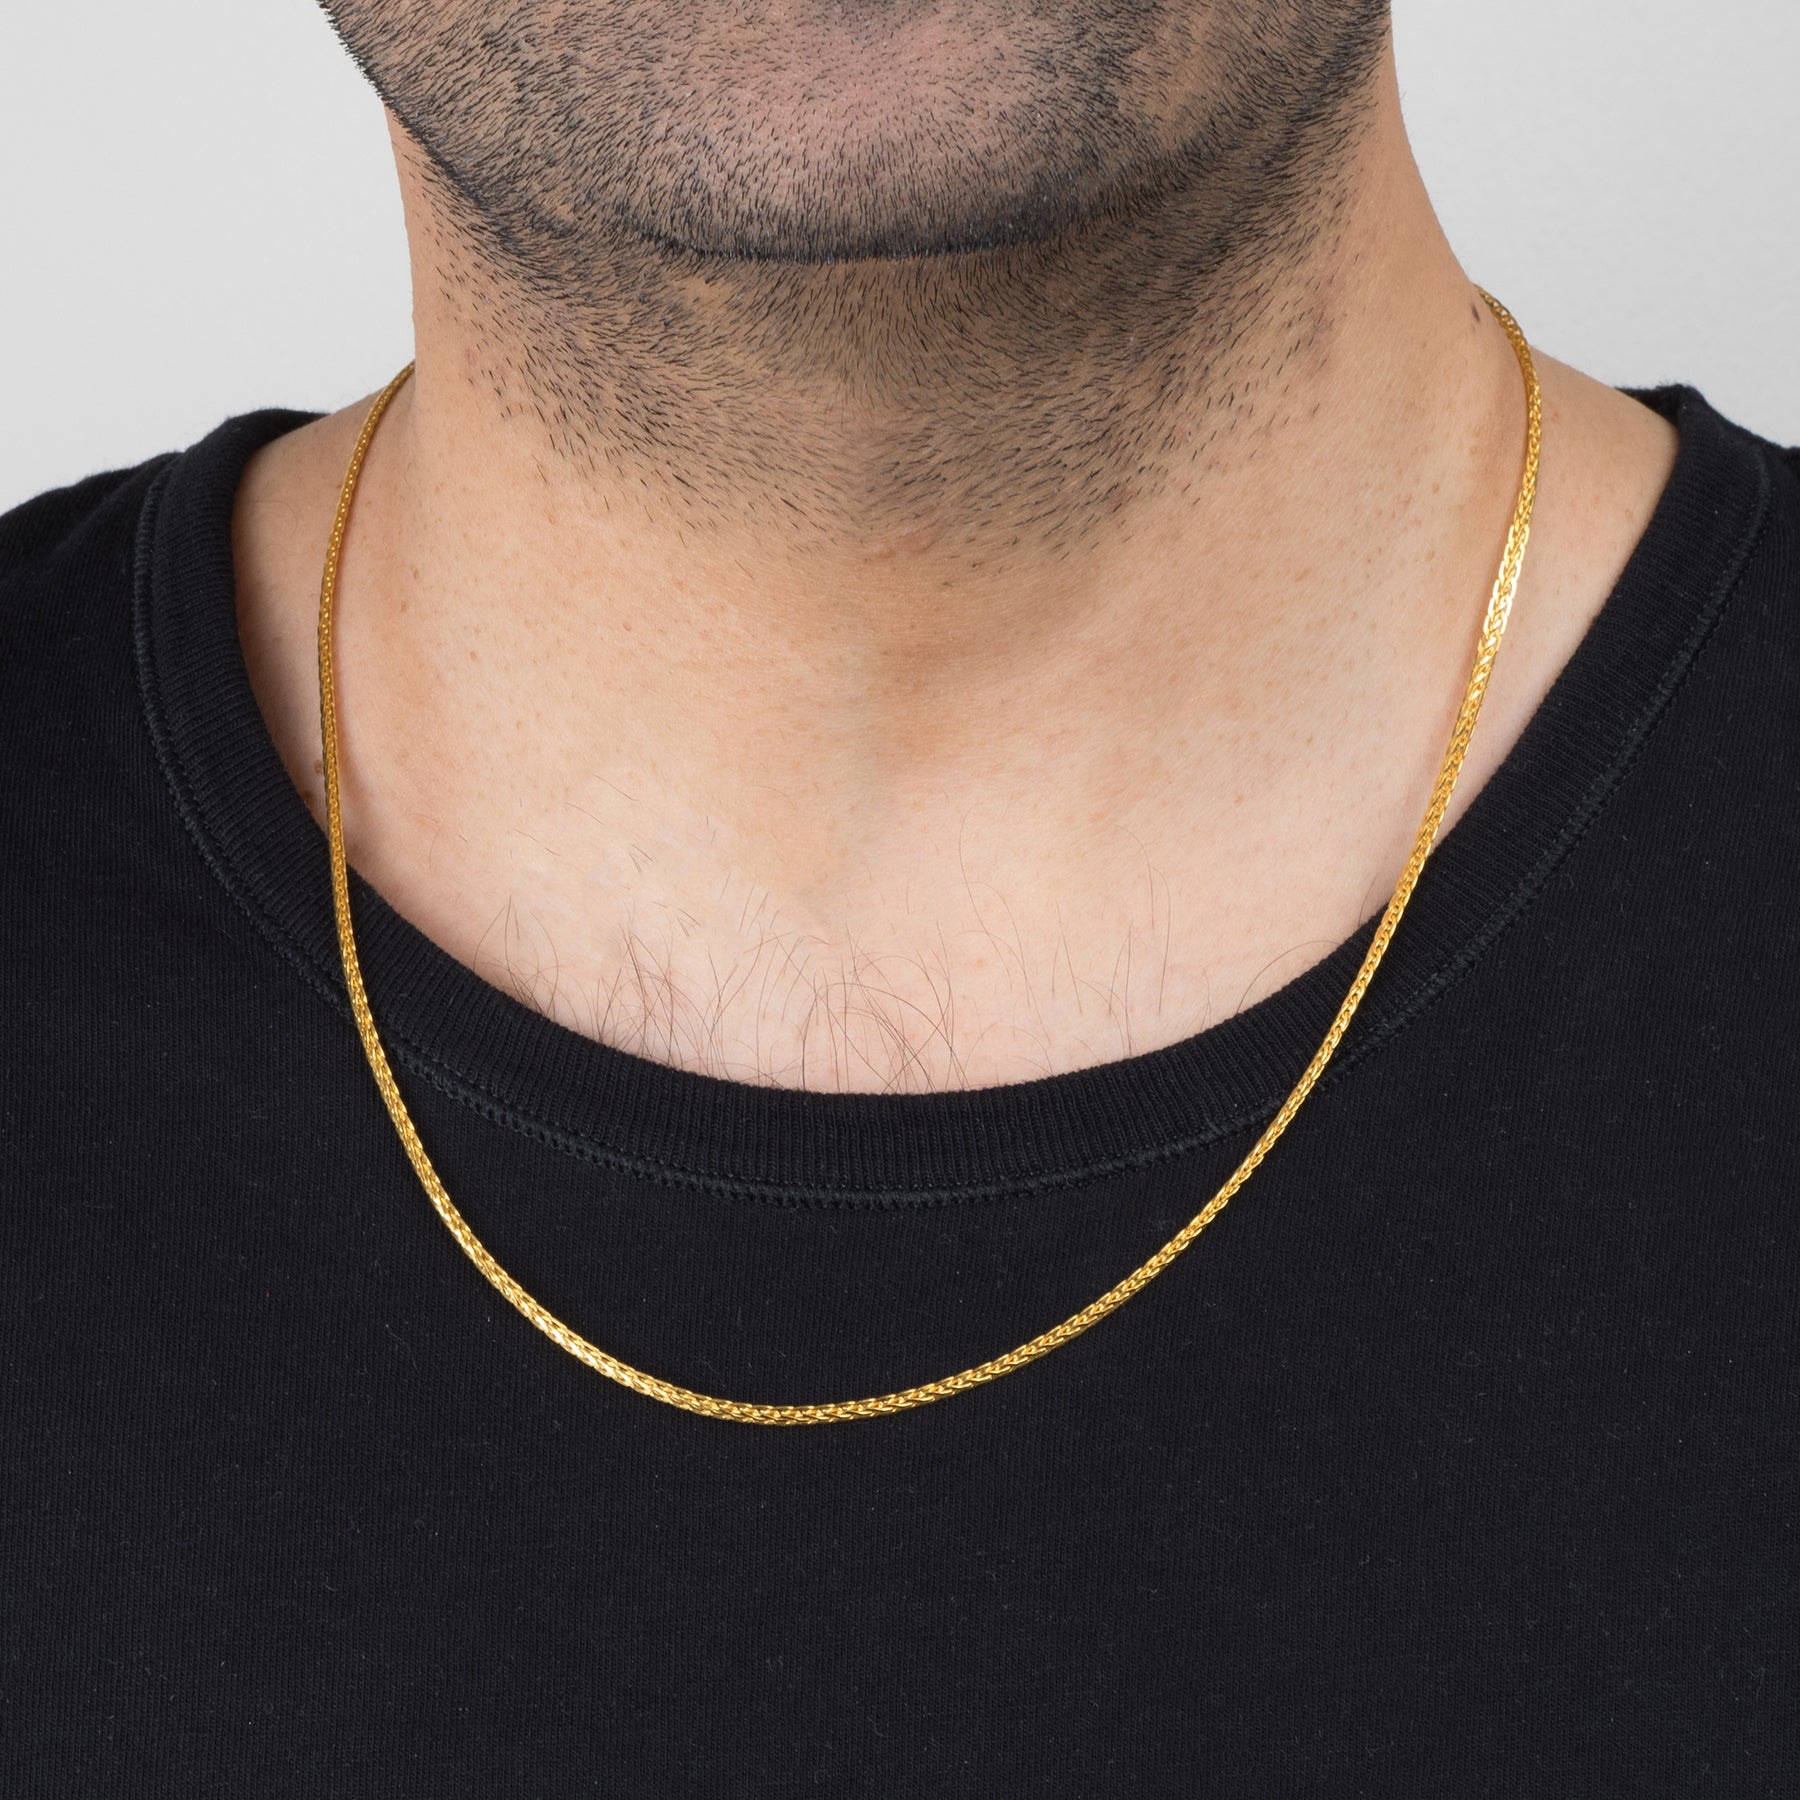 22ct Gold Unisex Chain with a lobster clasp C-2805